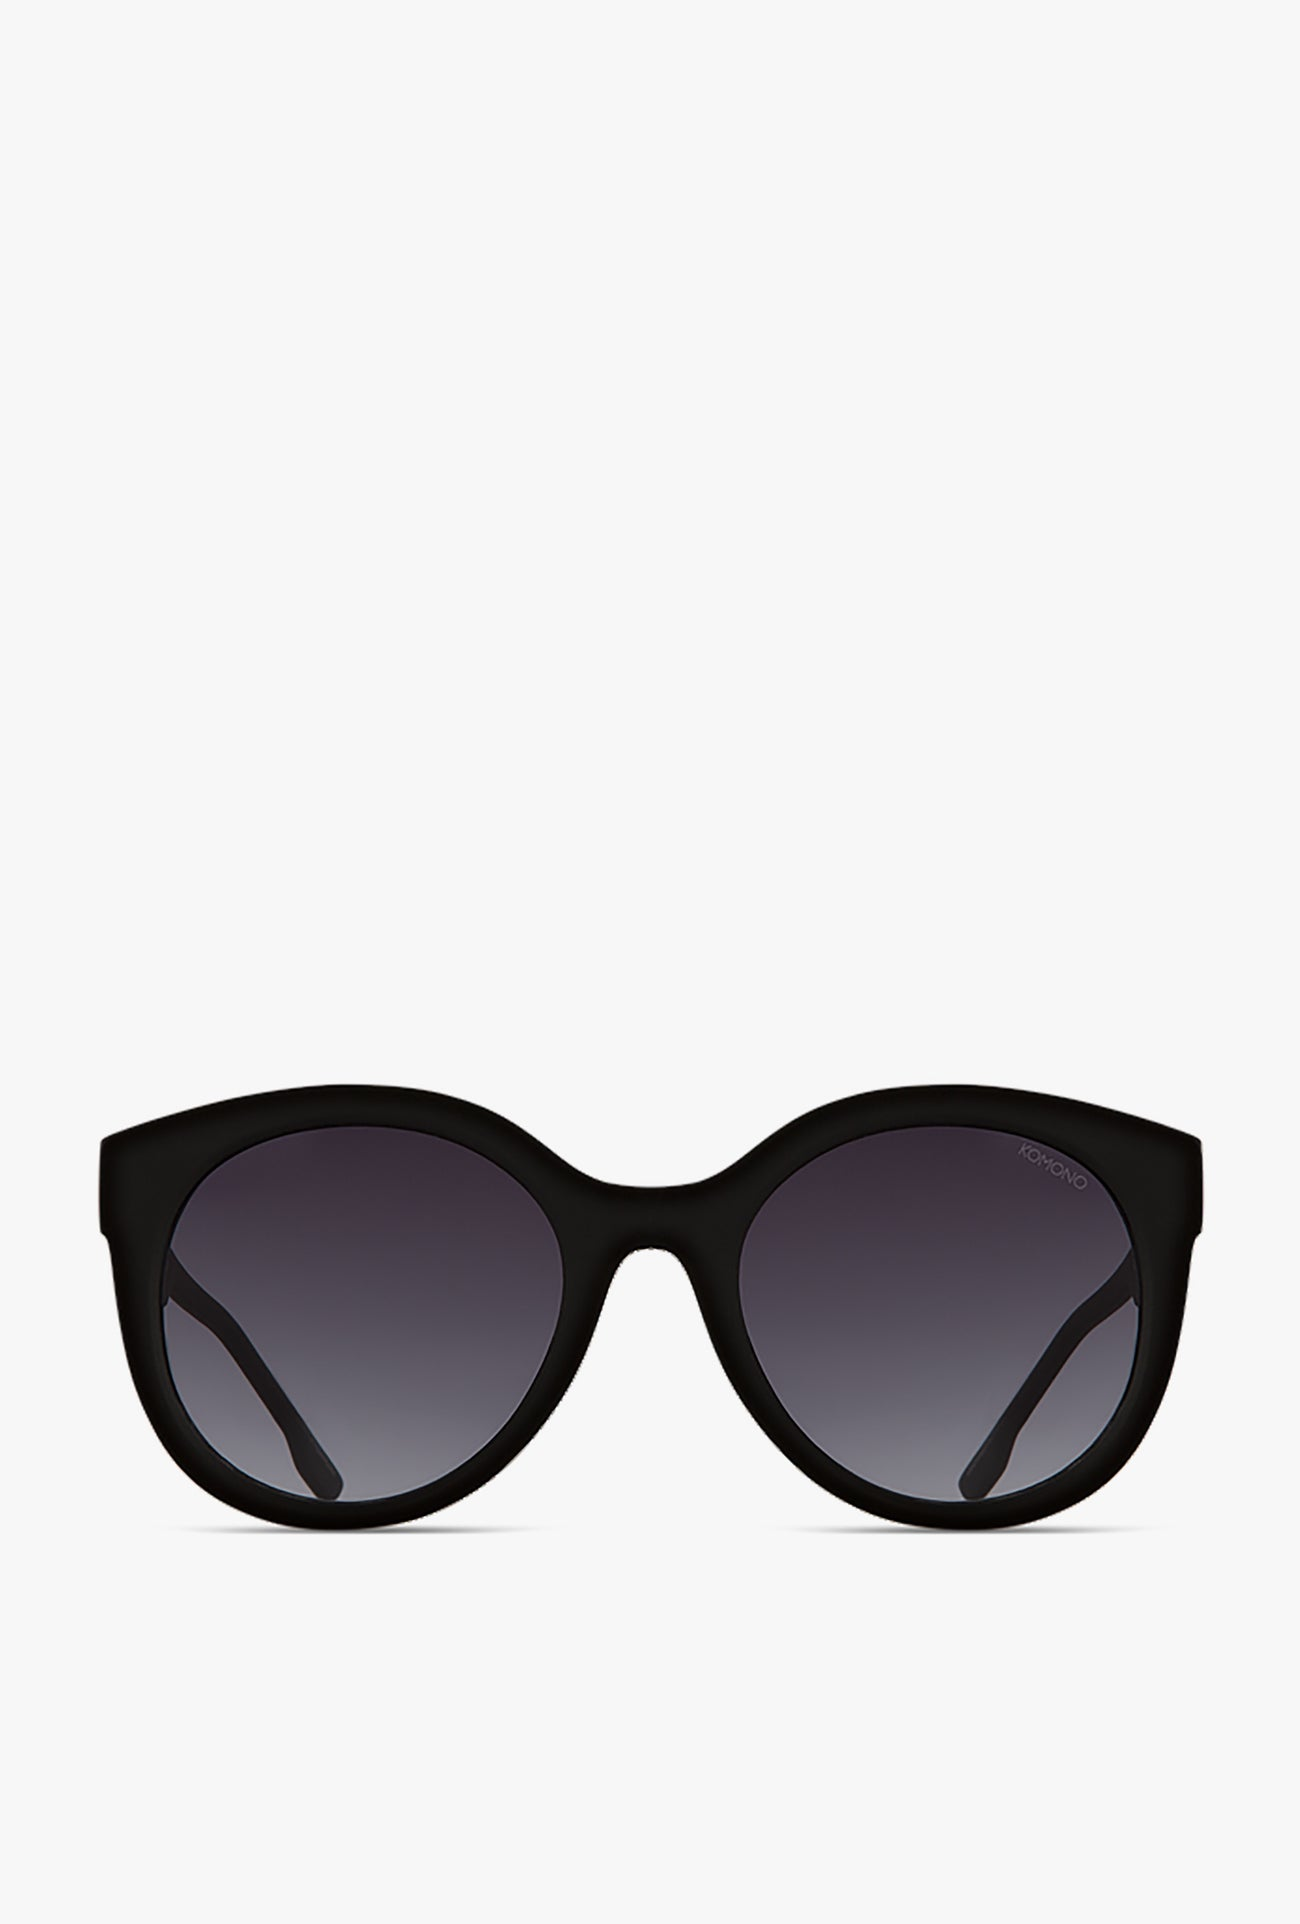 Ellis Sunglasses - Carbon